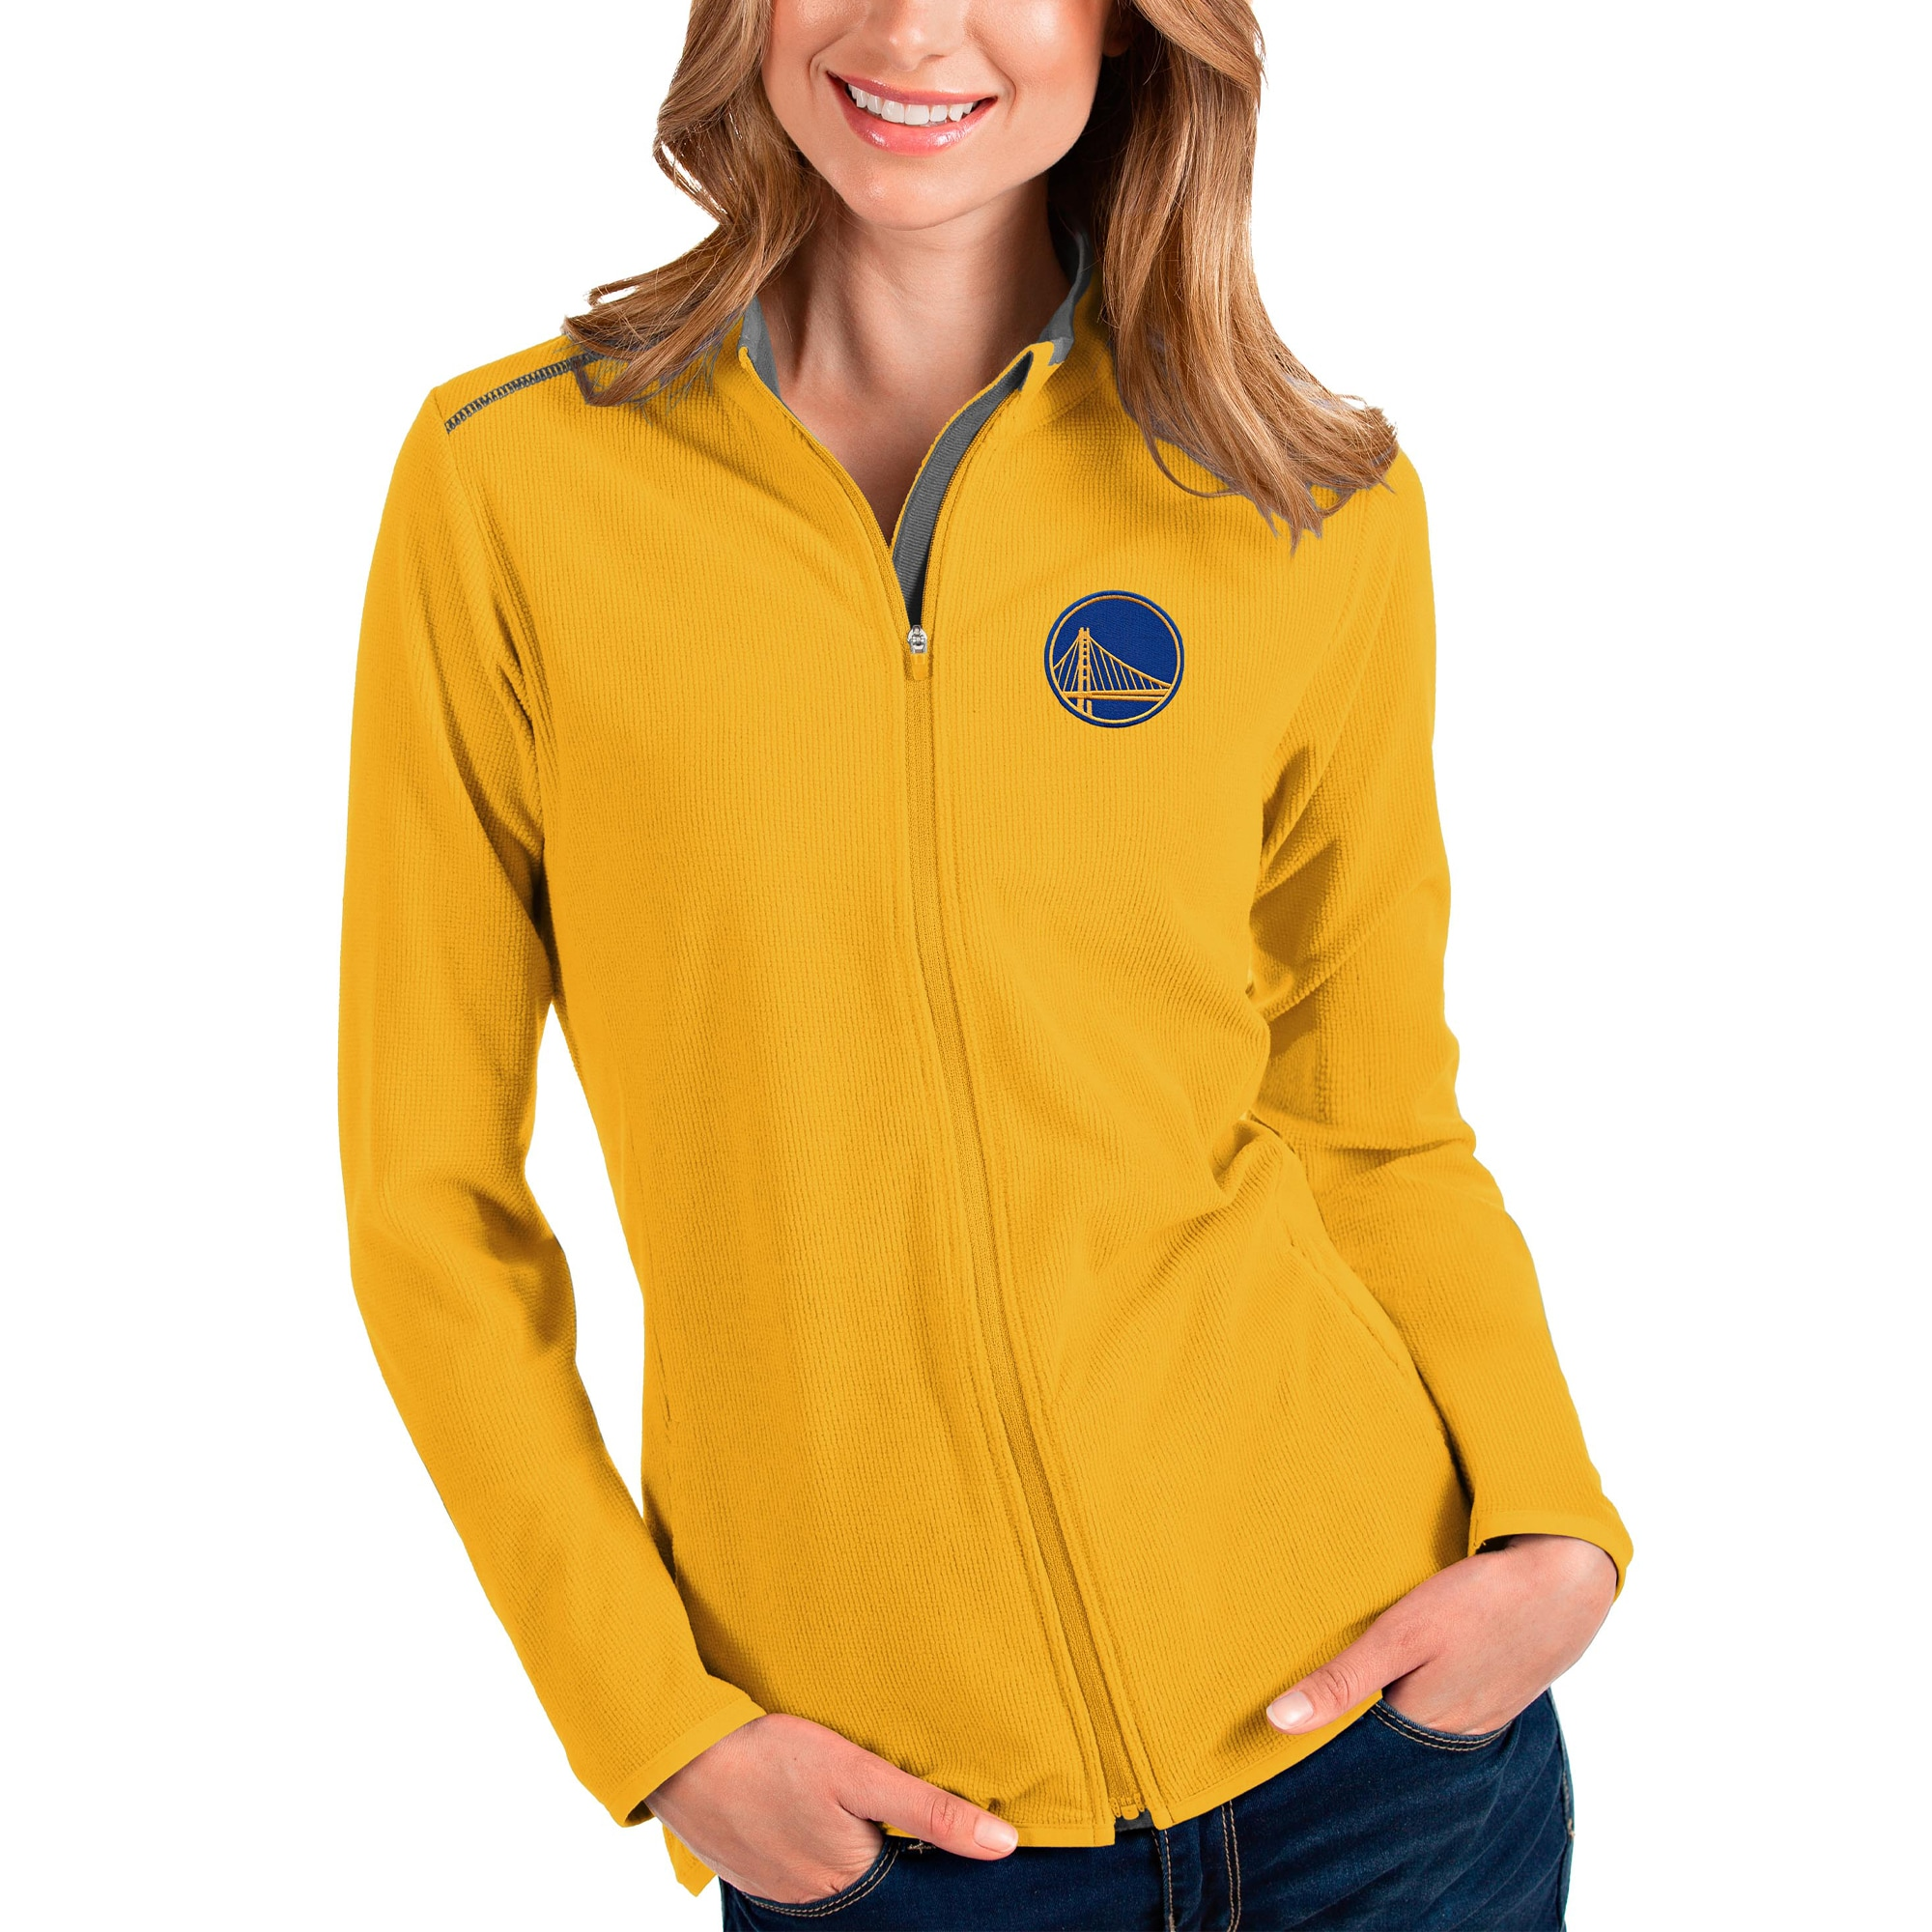 Golden State Warriors Antigua Women's Glacier Full-Zip Jacket - Gold/Gray